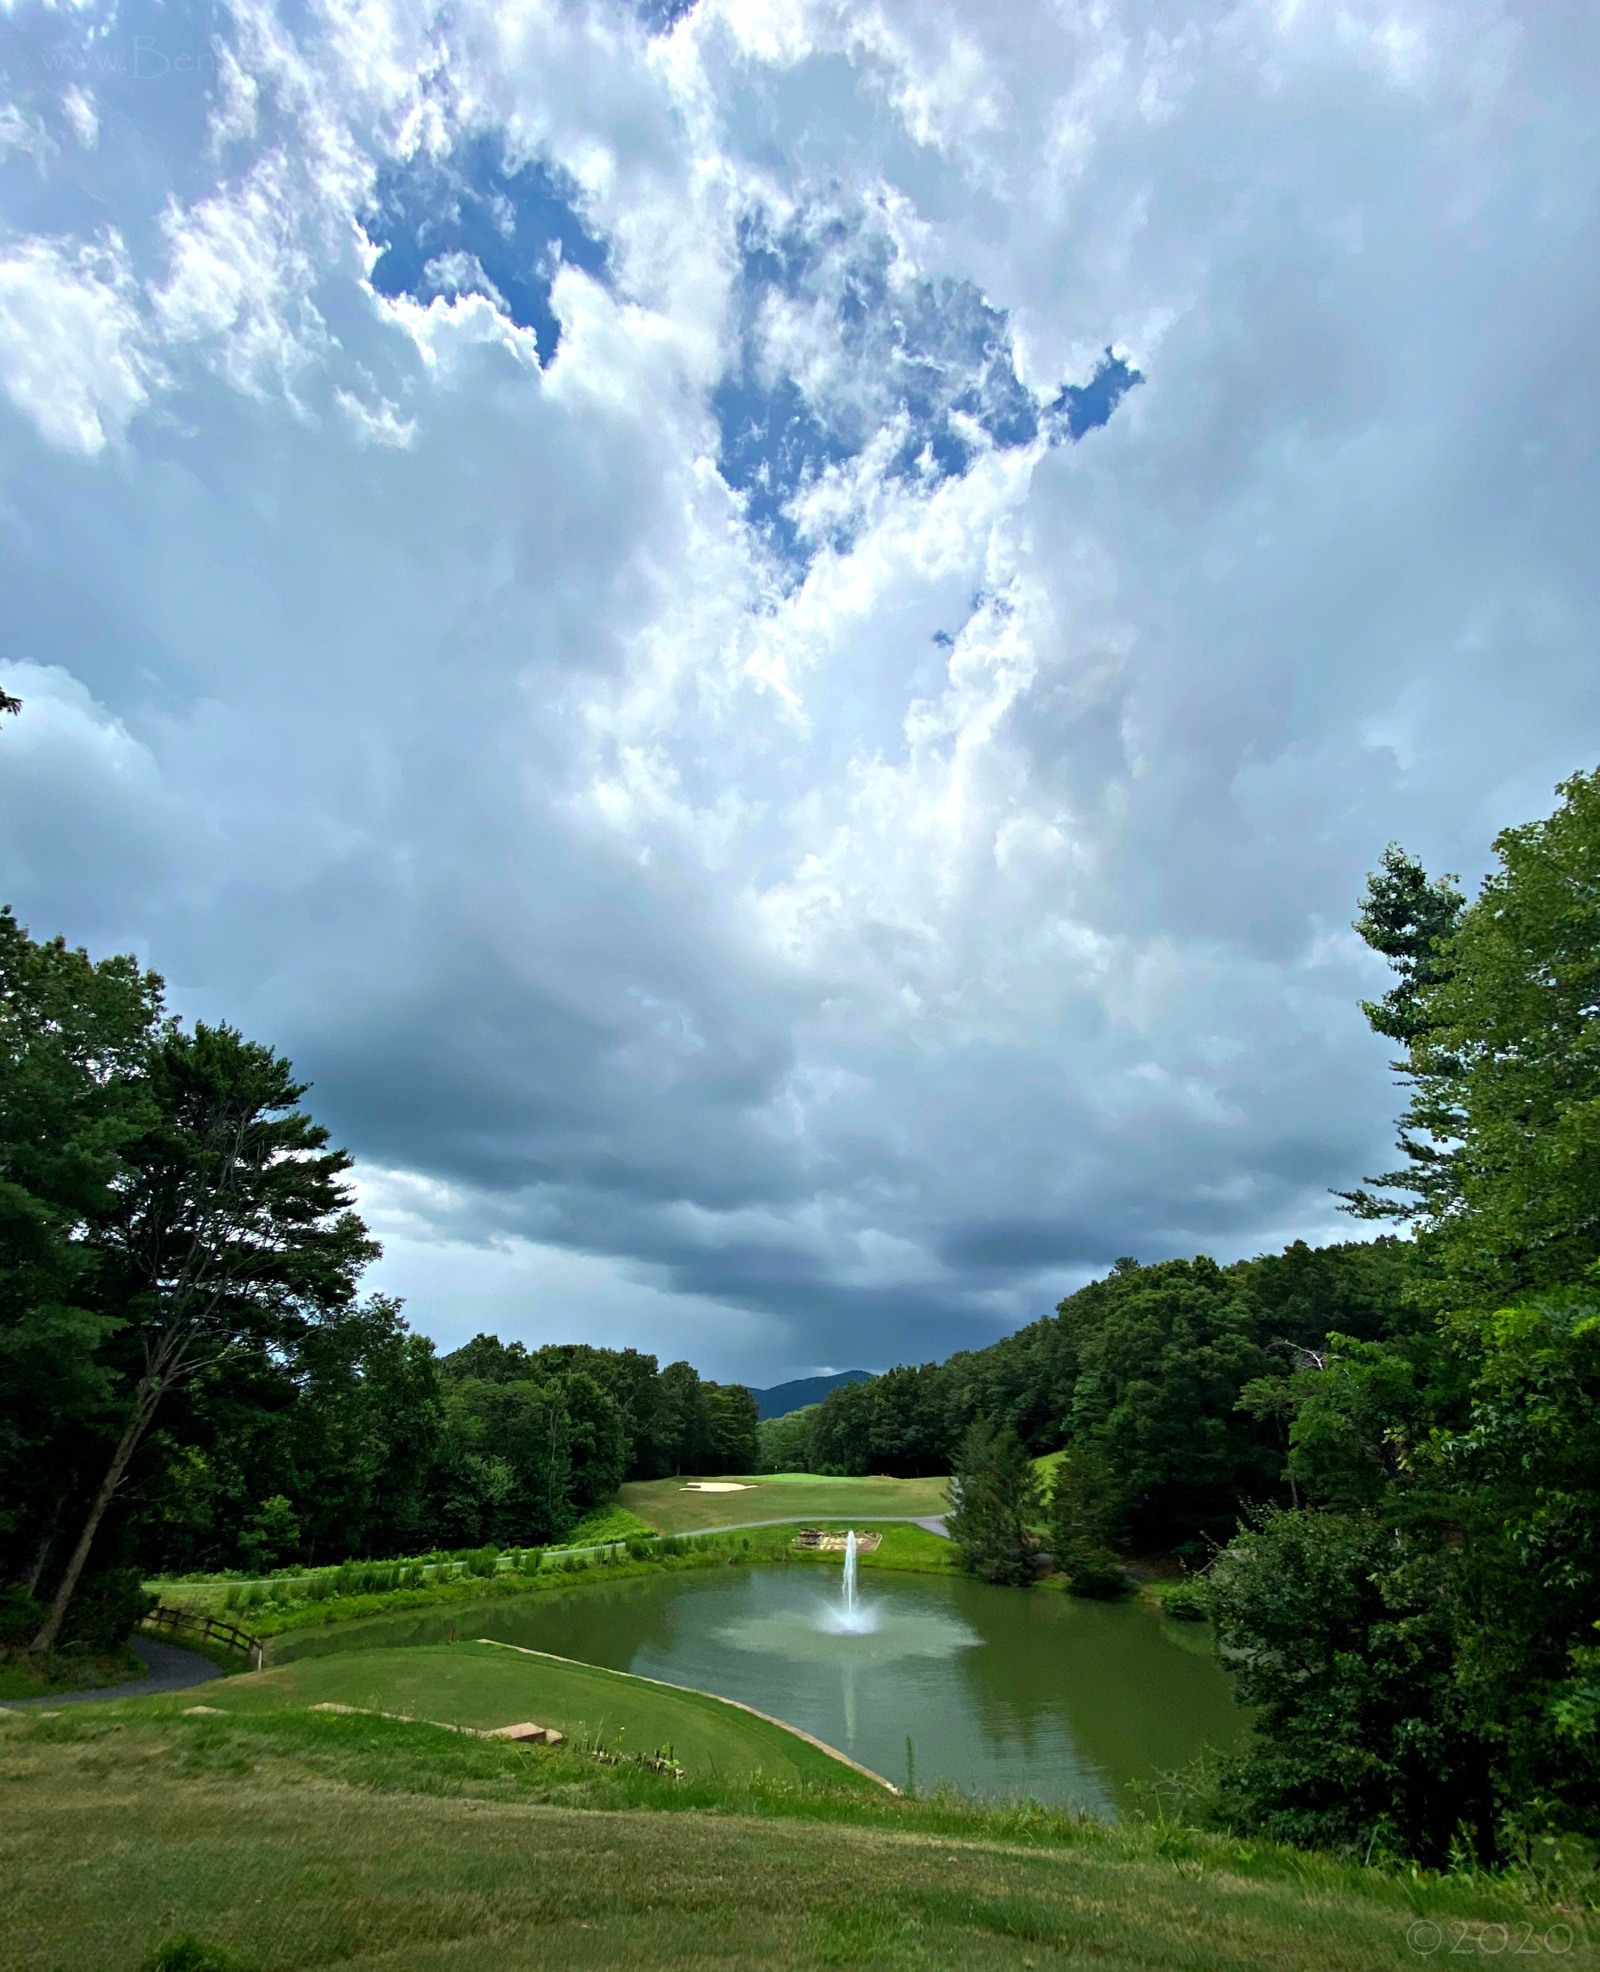 July 2, 2020 - view from Hole 7